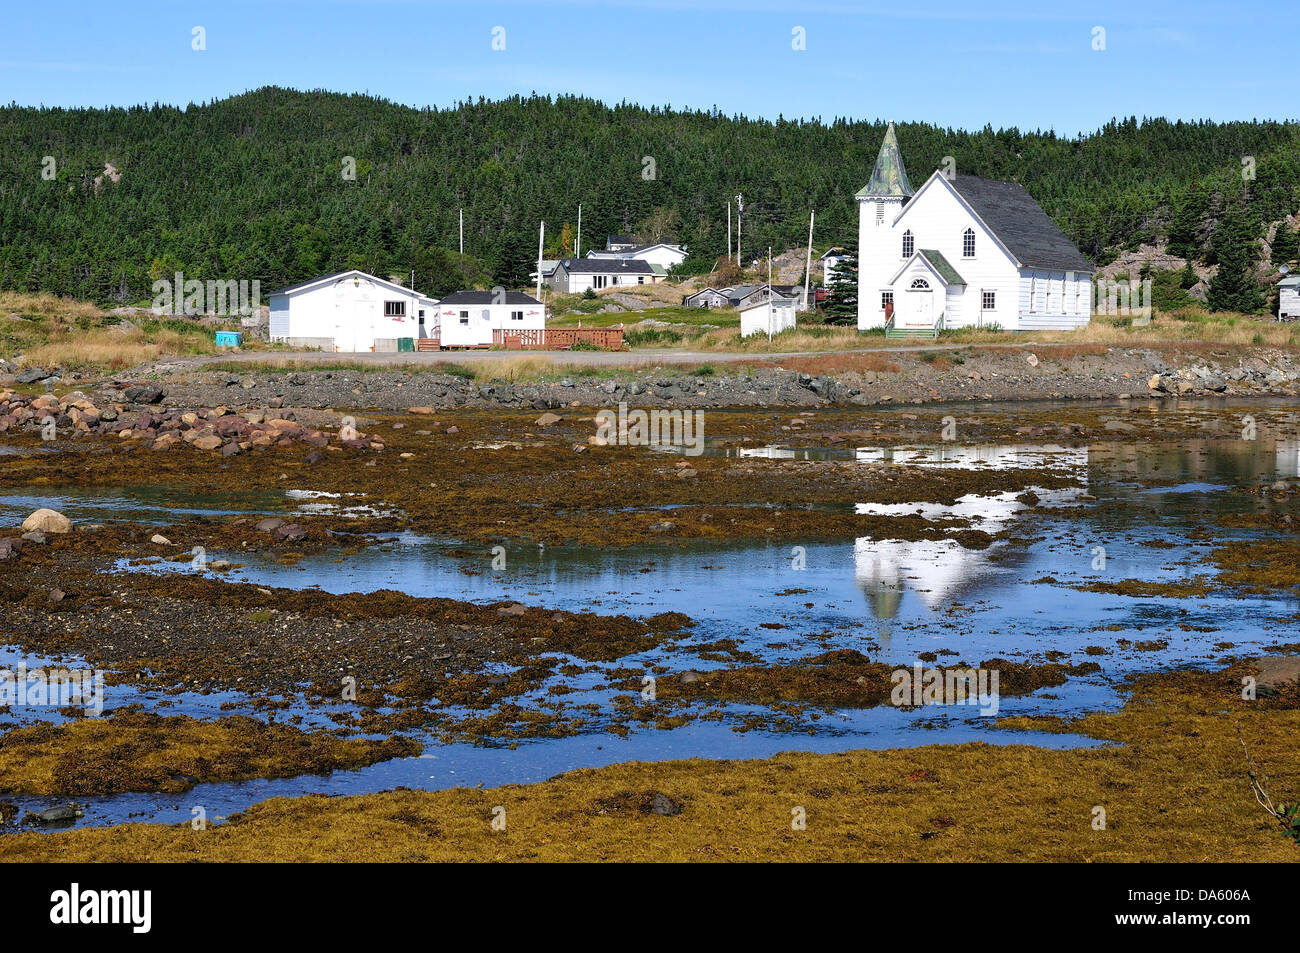 Fishing Village, North Coast, Newfoundland, Canada, village, water, forest - Stock Image